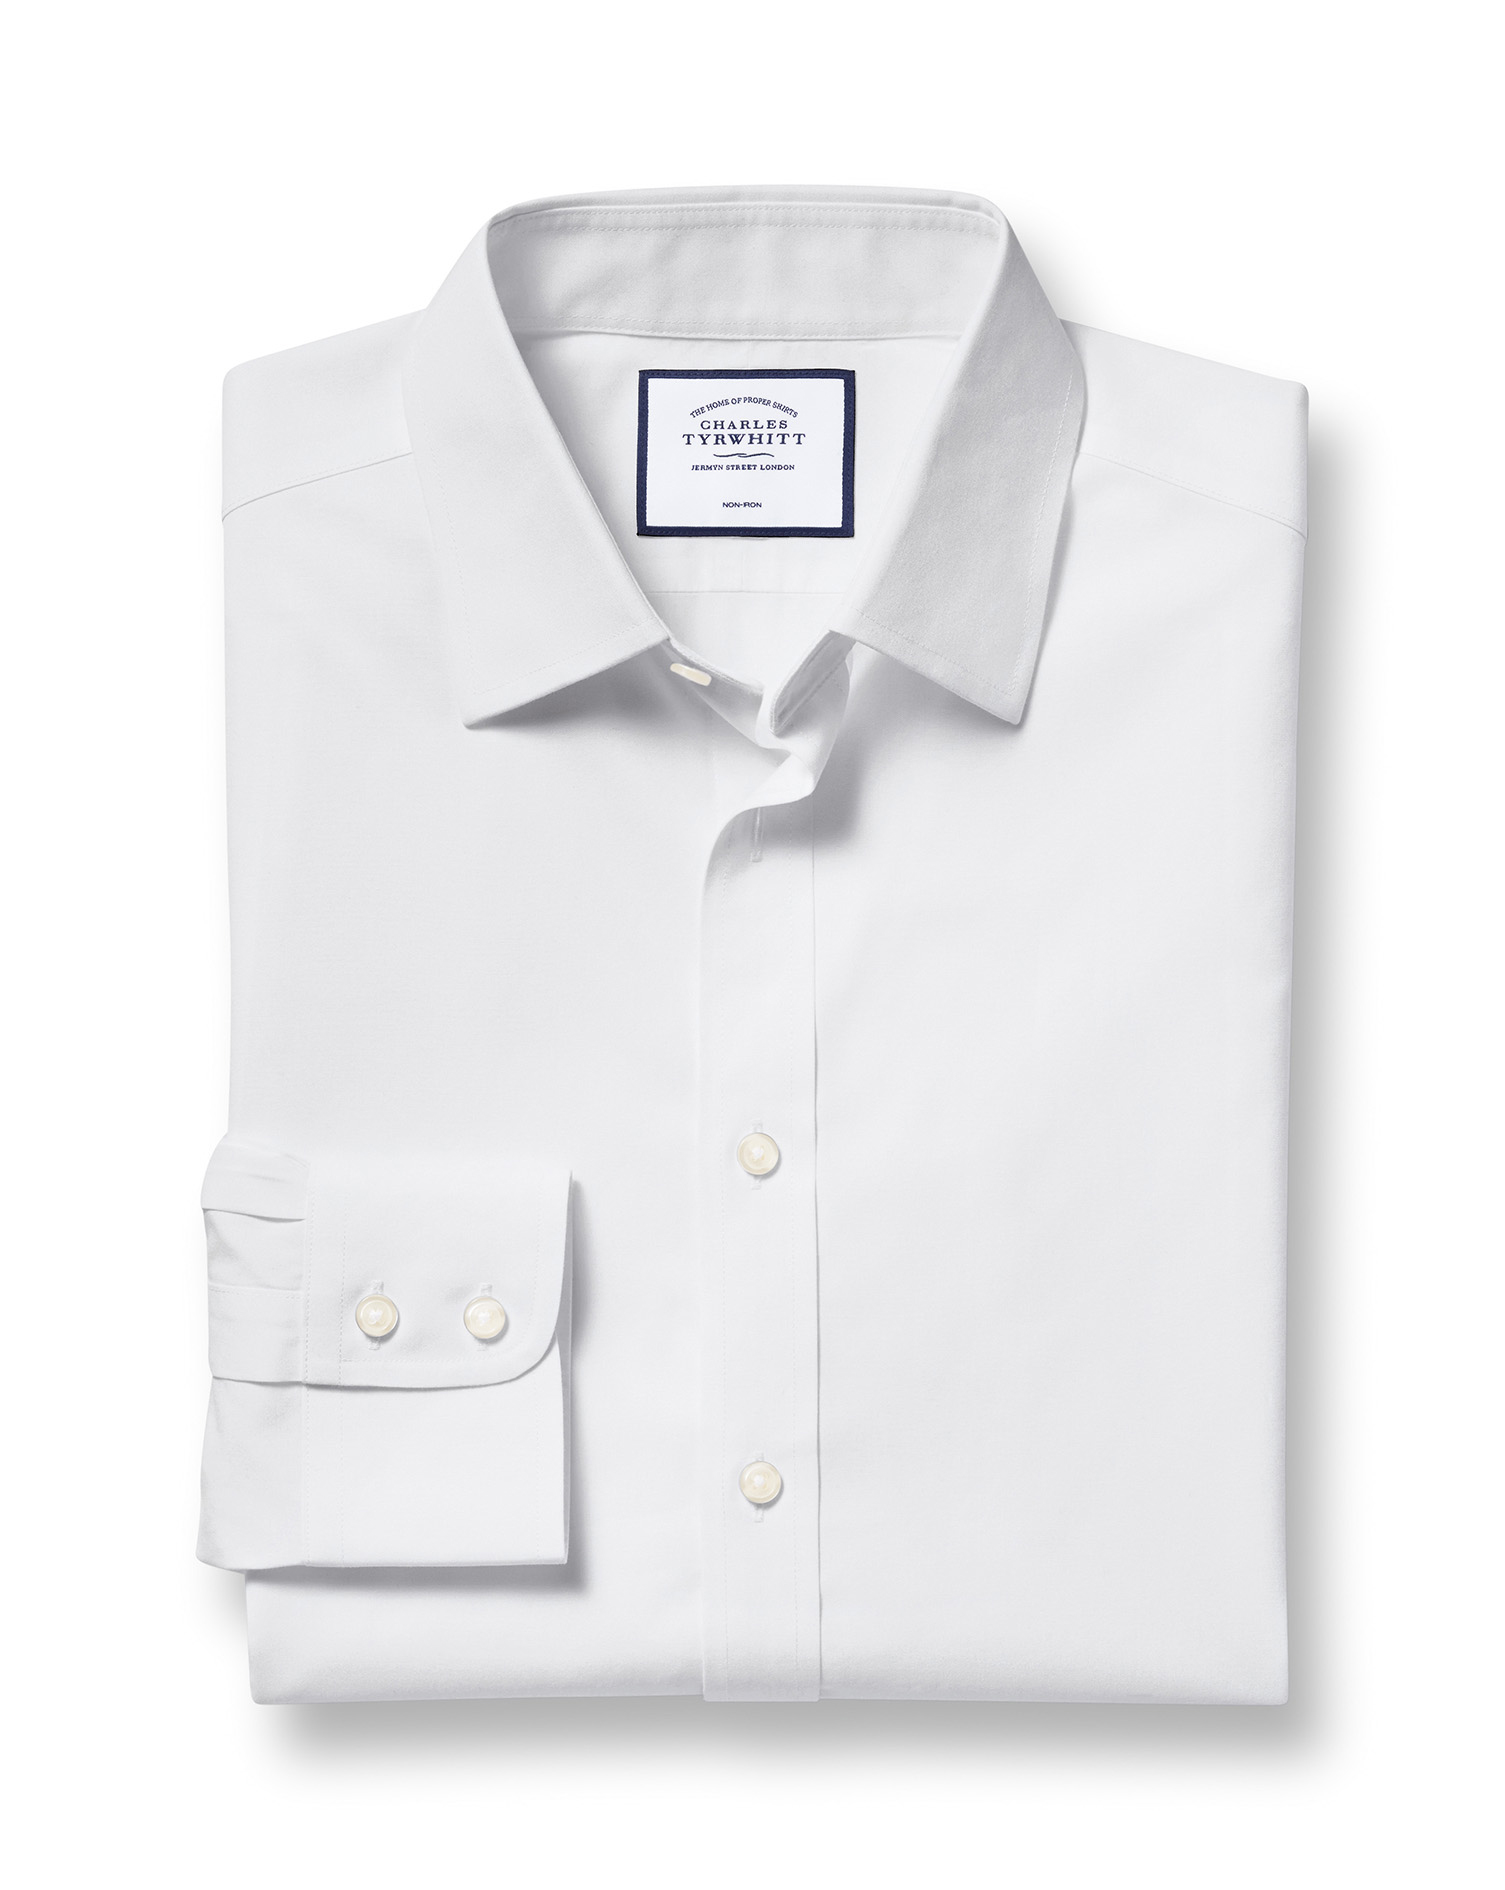 Extra Slim Fit Non-Iron Poplin White Cotton Formal Shirt Double Cuff Size 15/35 by Charles Tyrwhitt